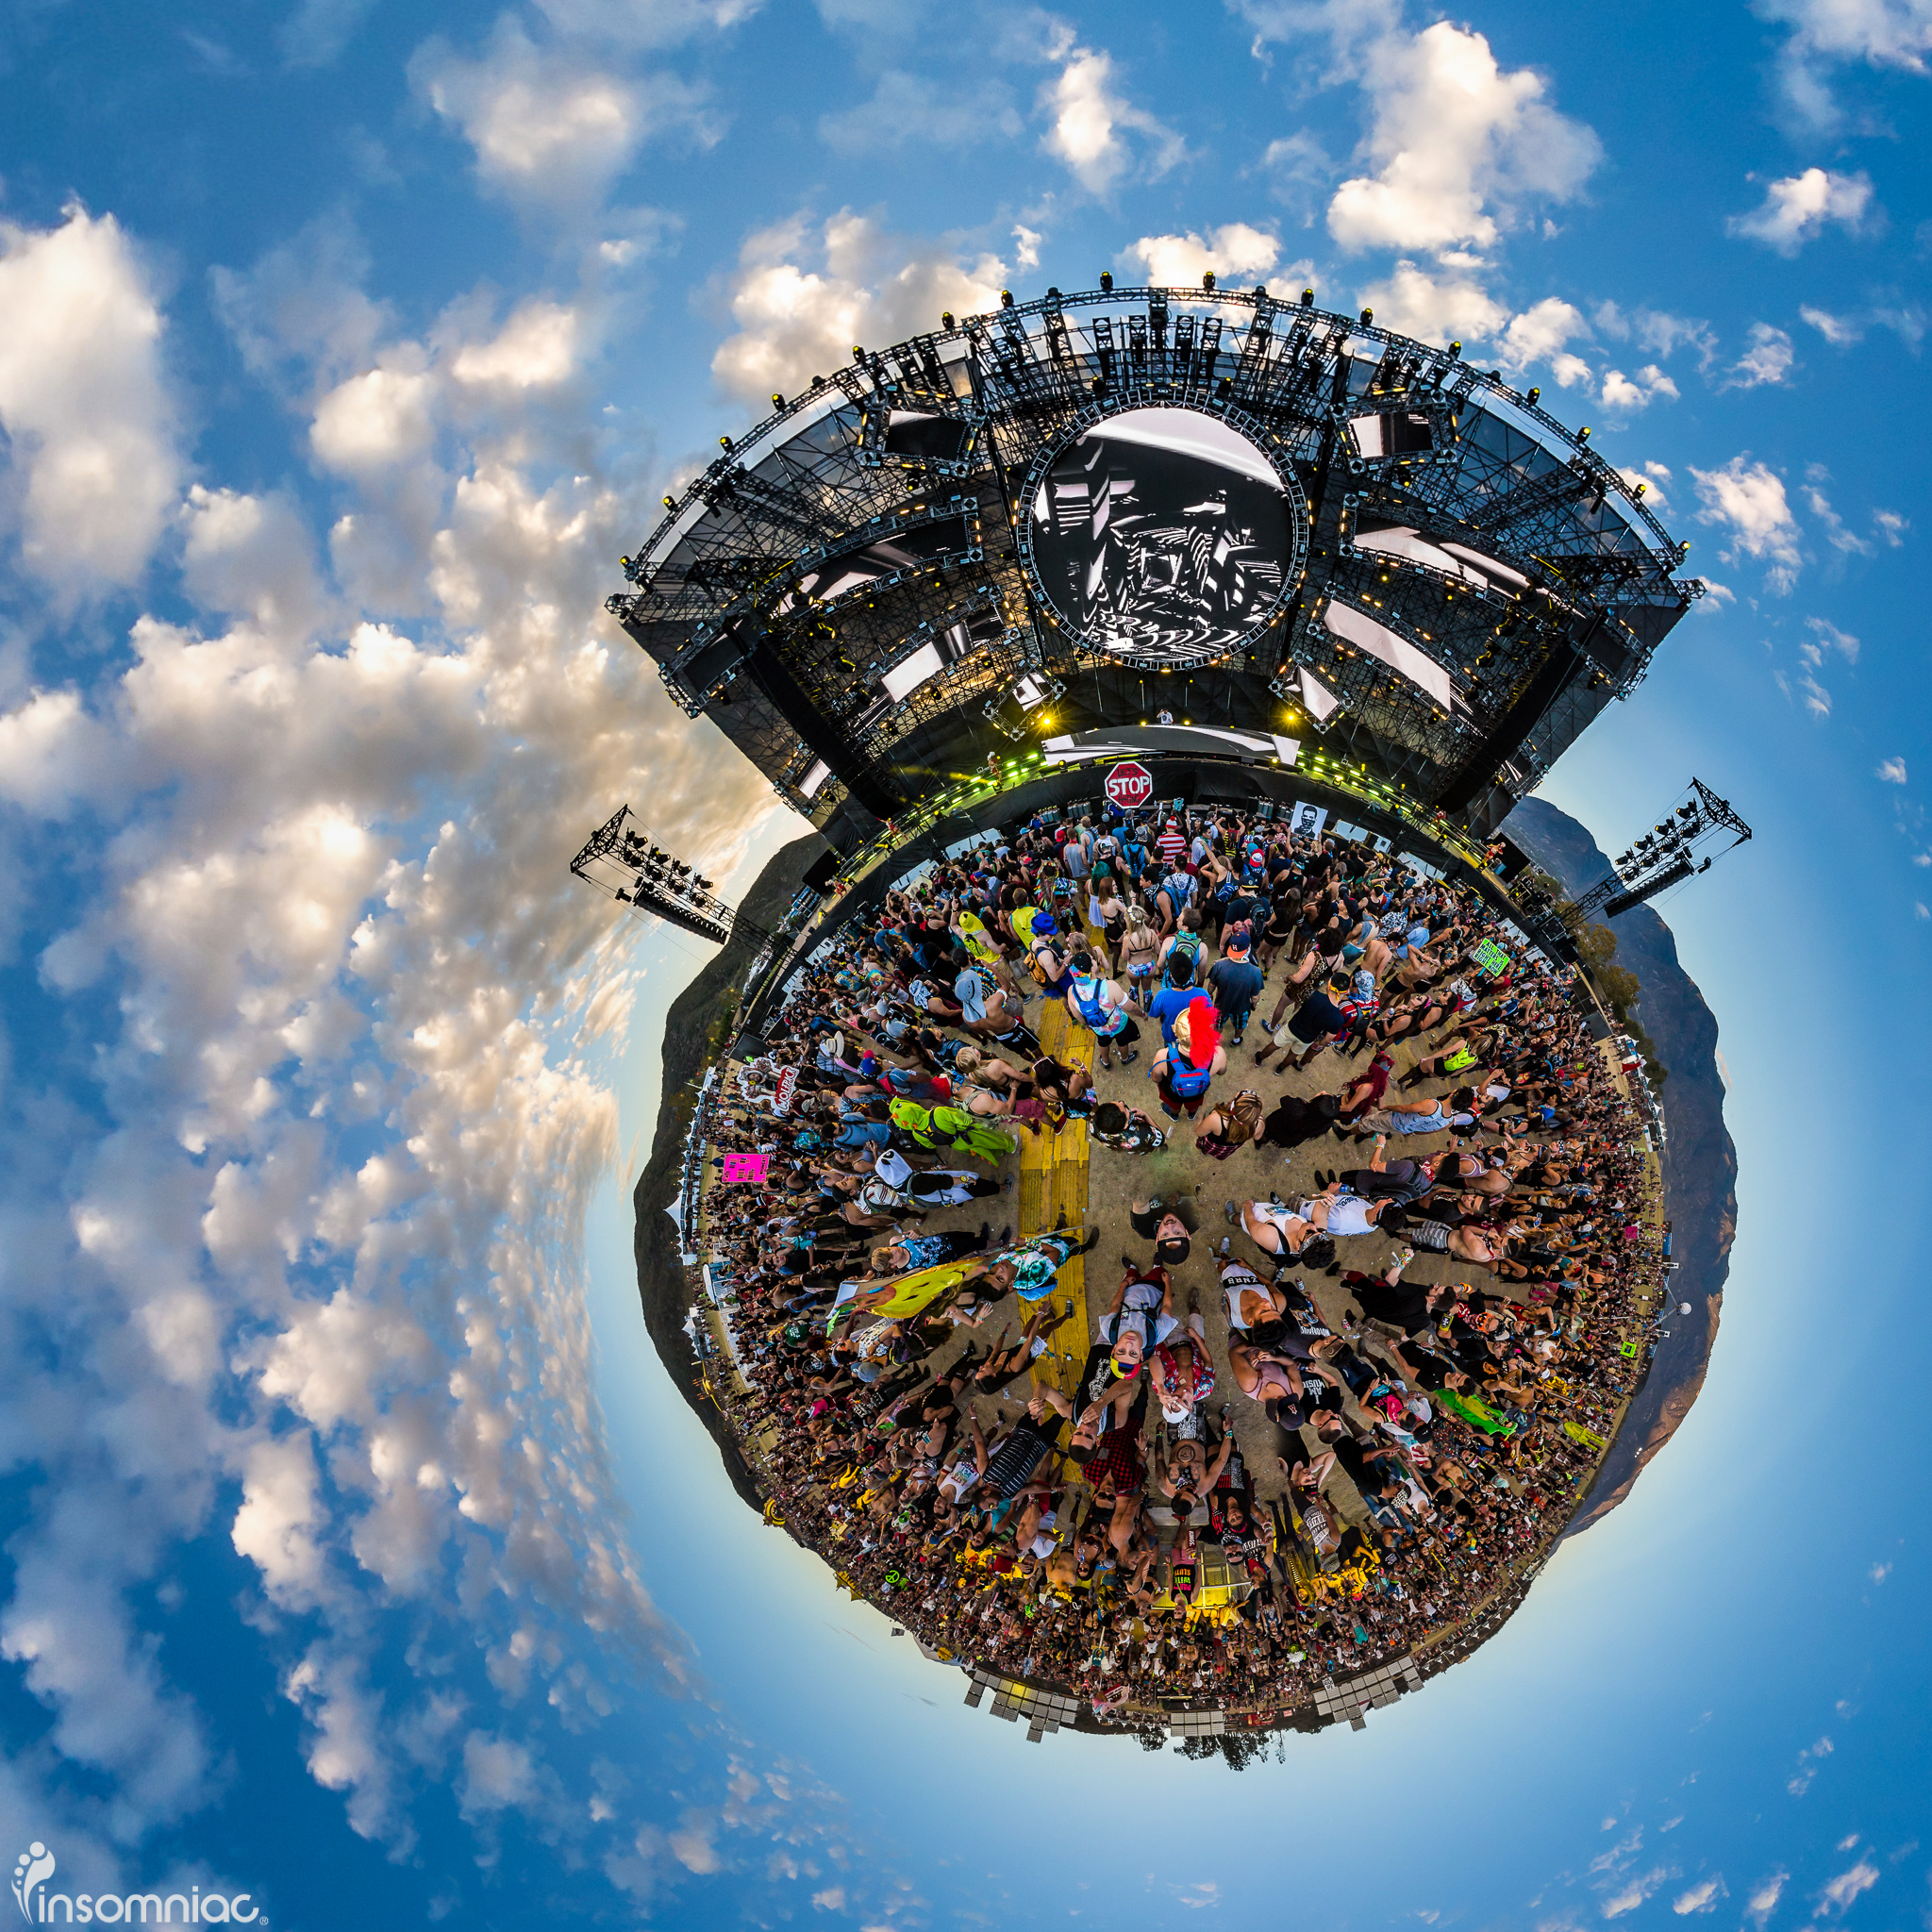 nocturnal_2015_iwally_alivecoverage-19.jpg